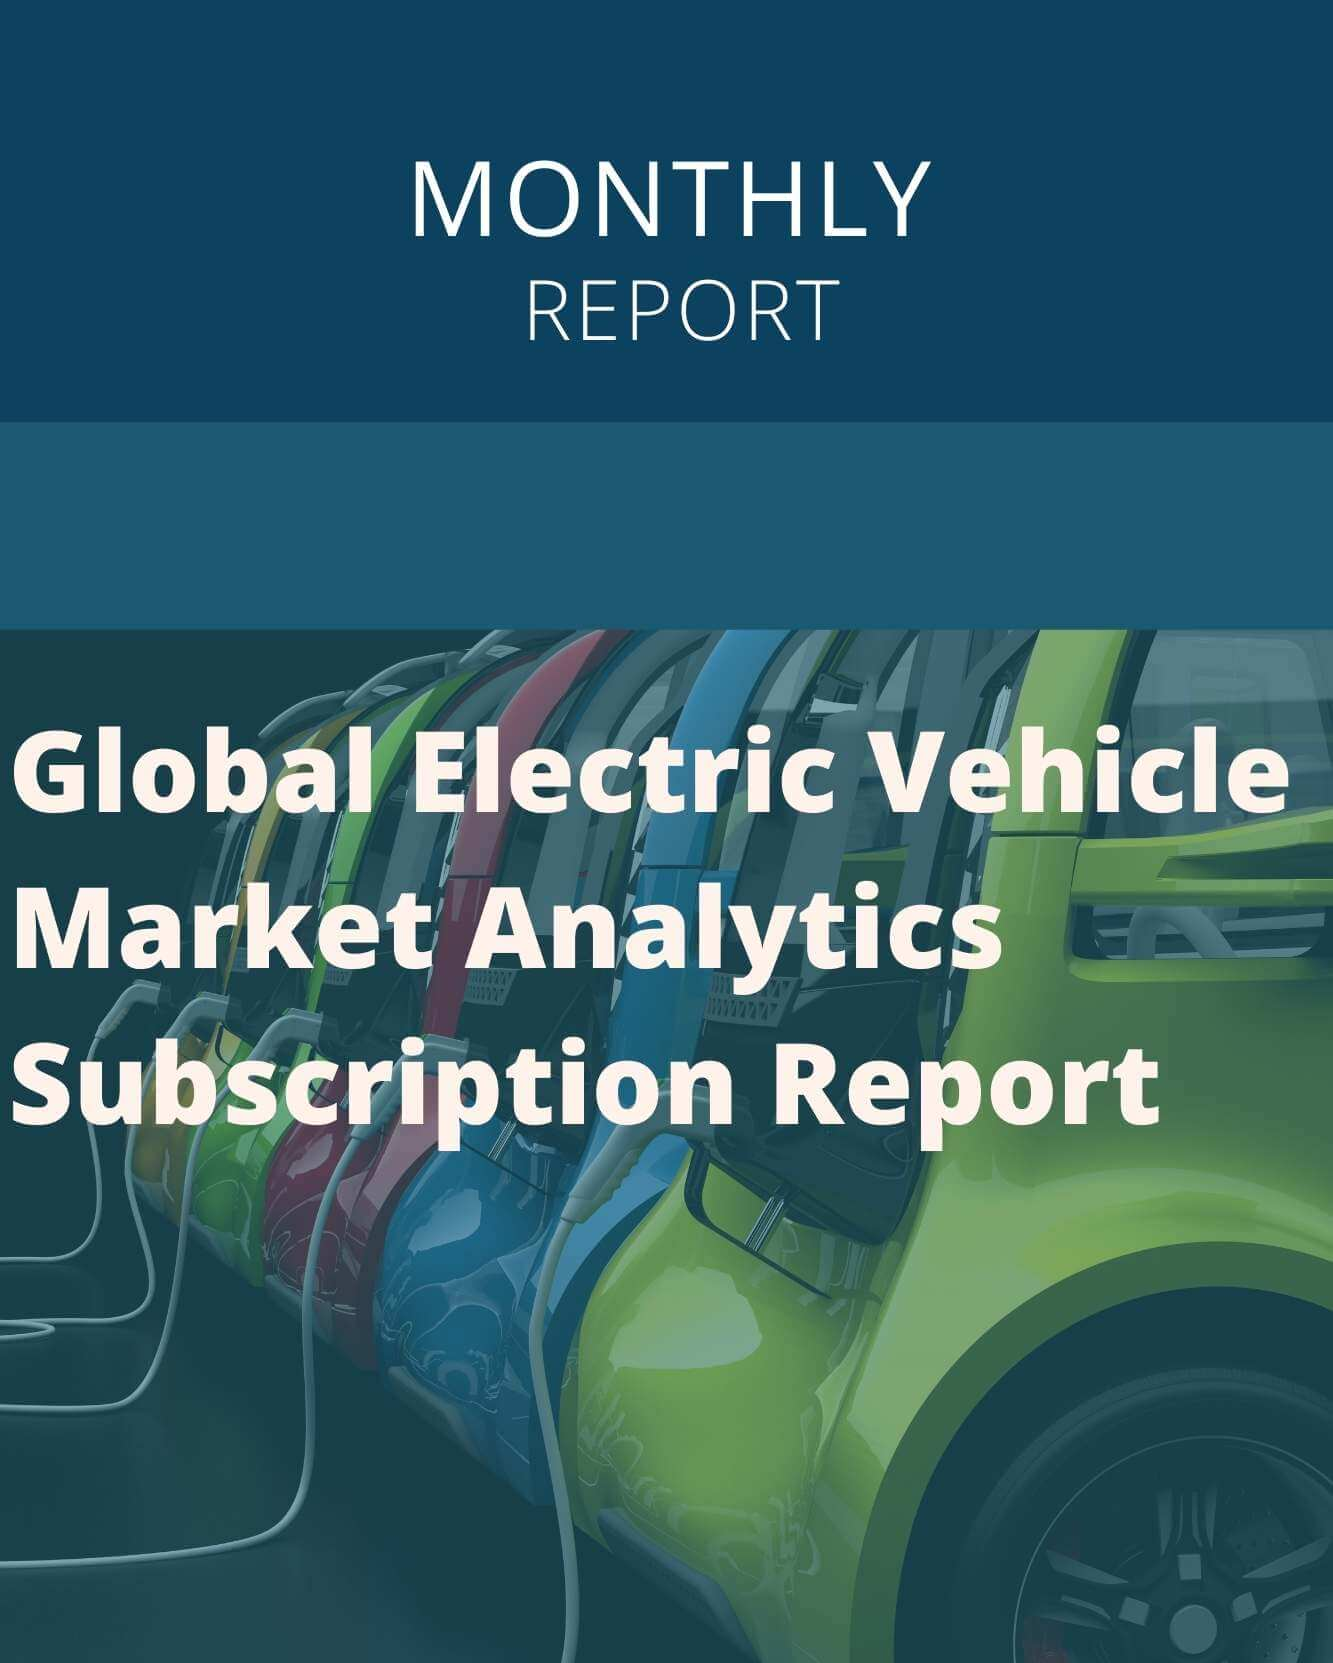 Global Electric Vehicle Market Analytics Subscription Report